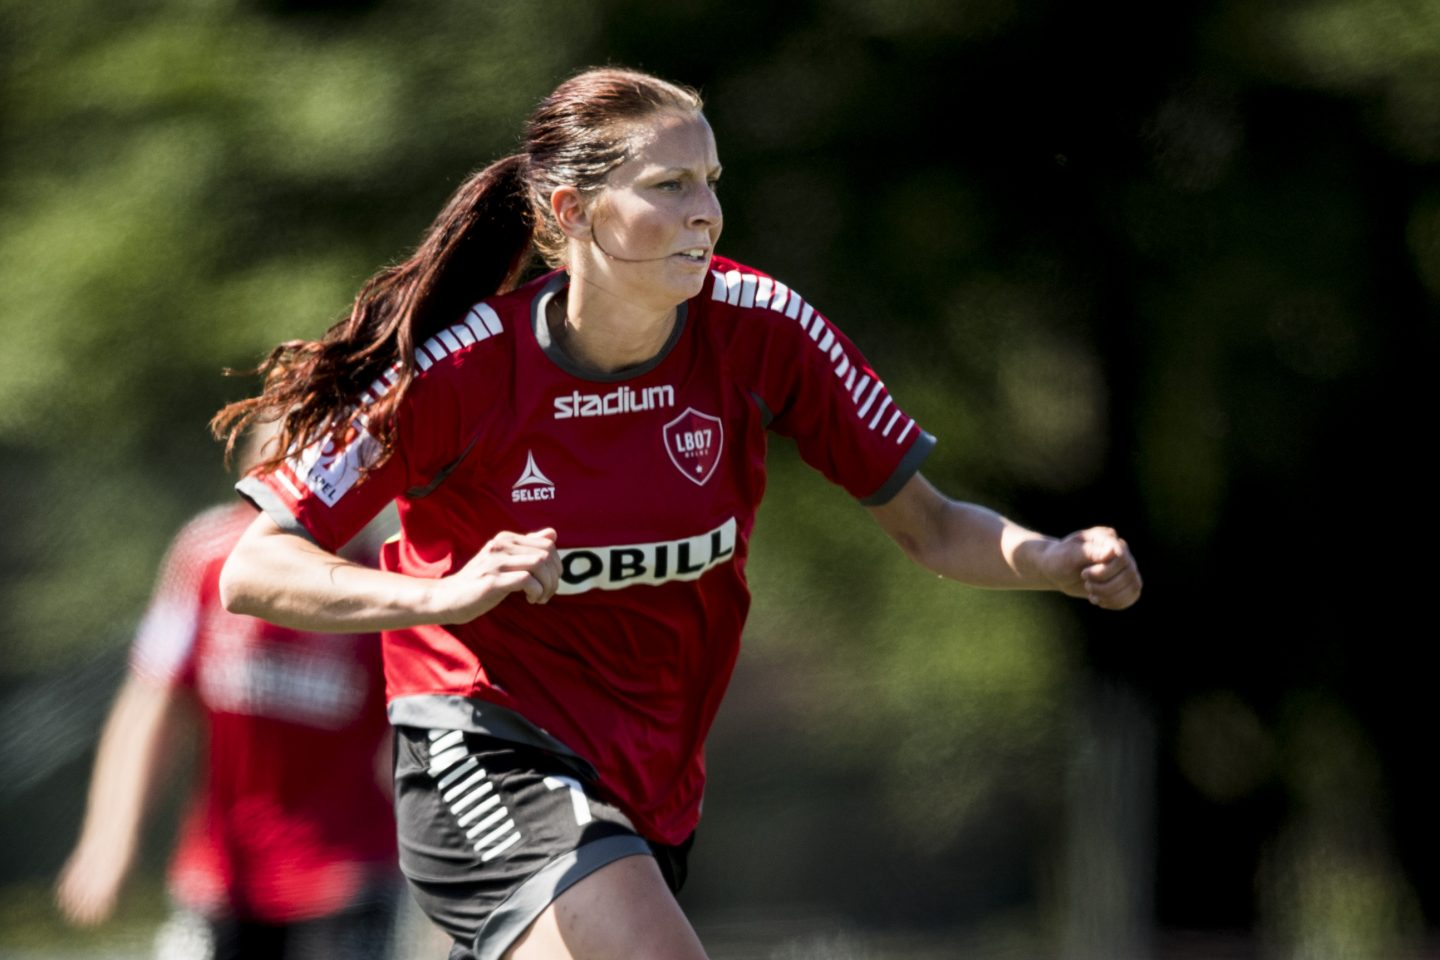 Photo of Malin Gunnarsson gör comeback i LB07